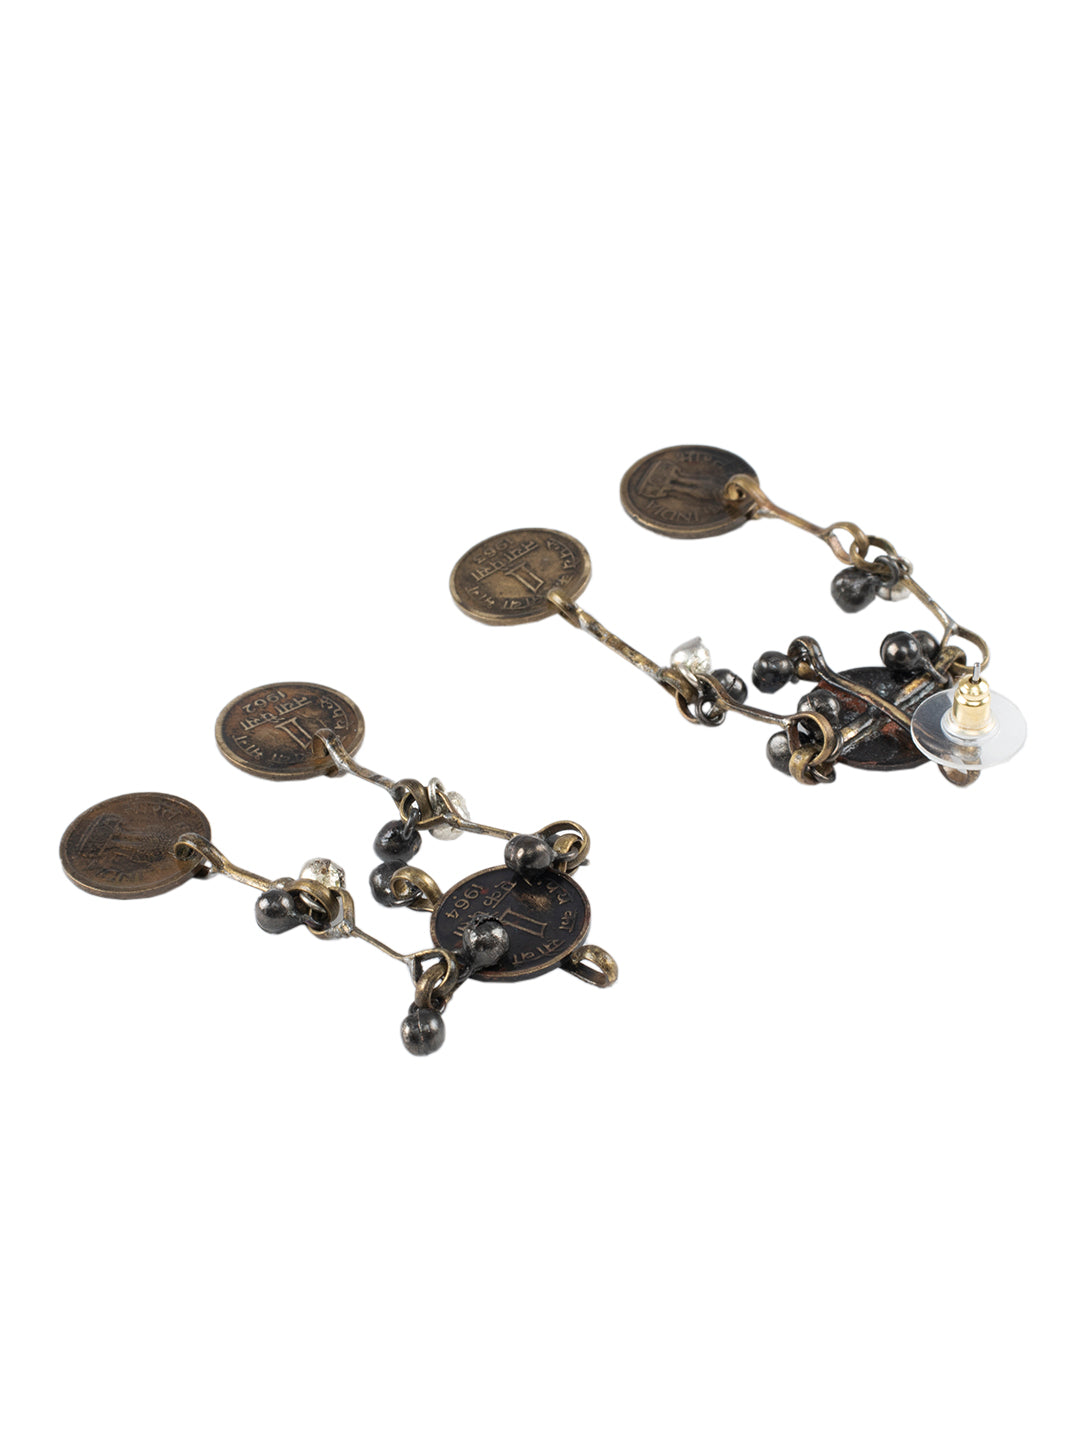 Vintage Dual Tone Earrings with Coins- Tribal